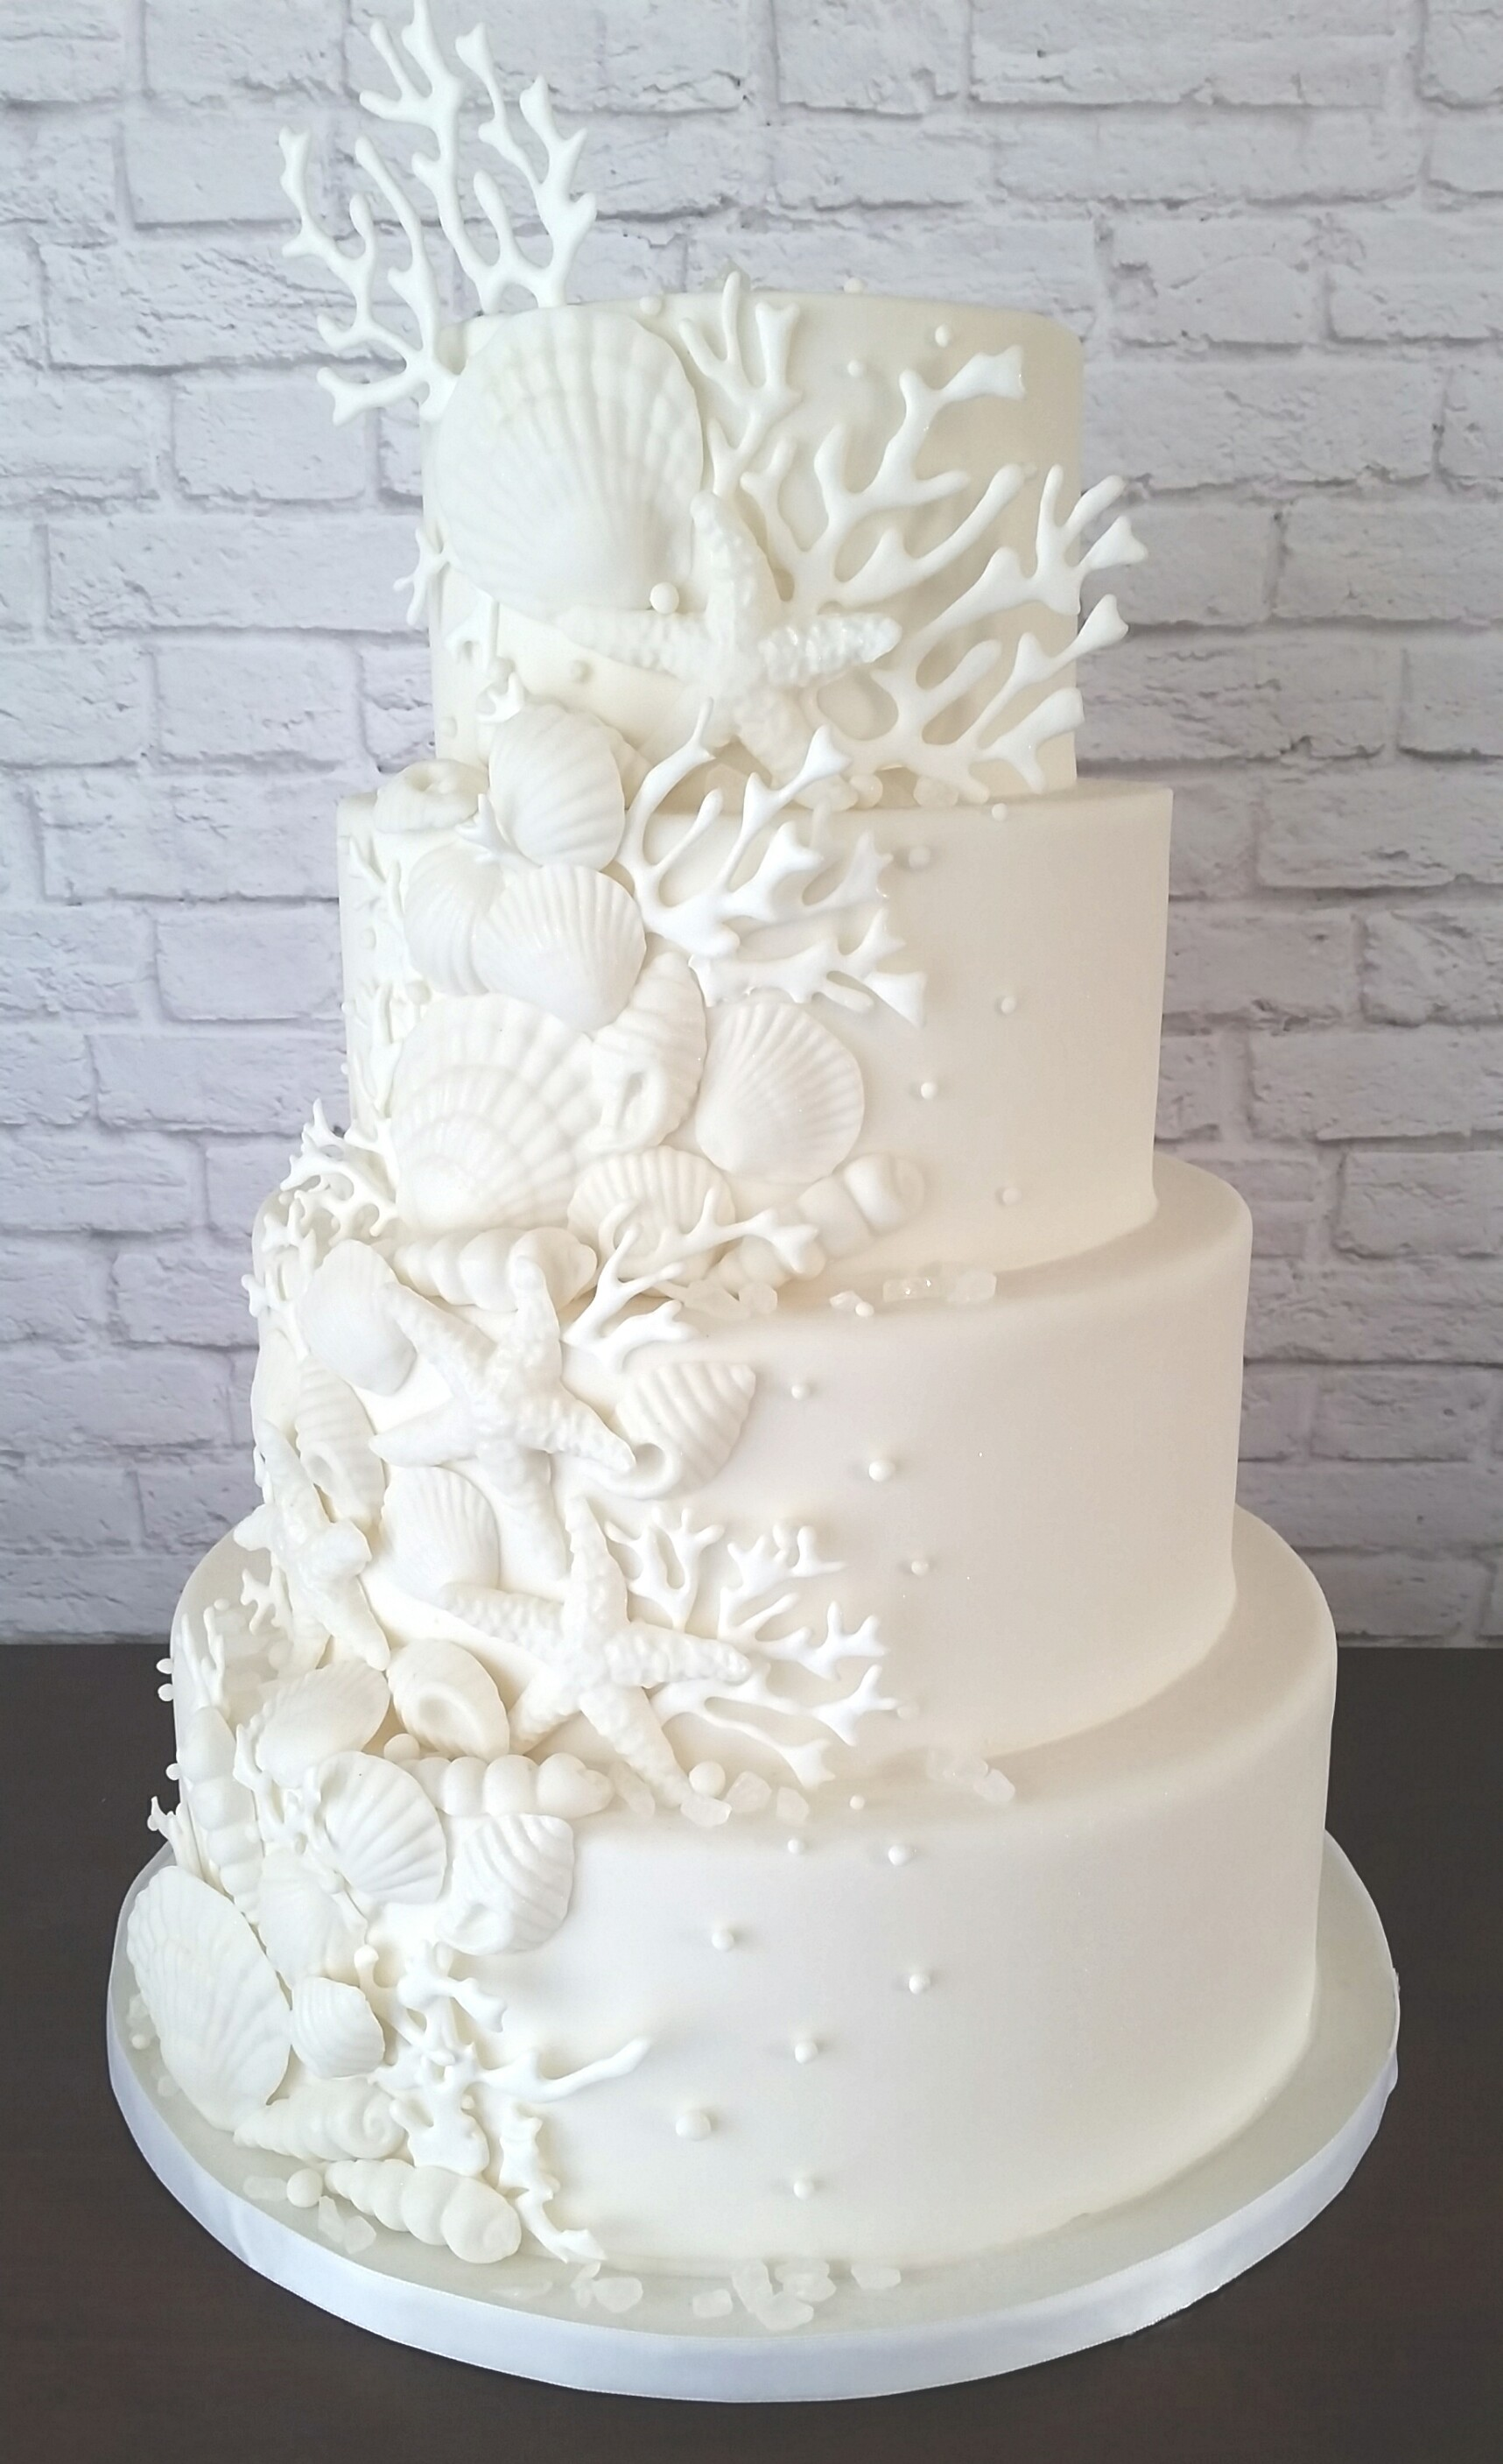 All white fondant wedding cake with seashells